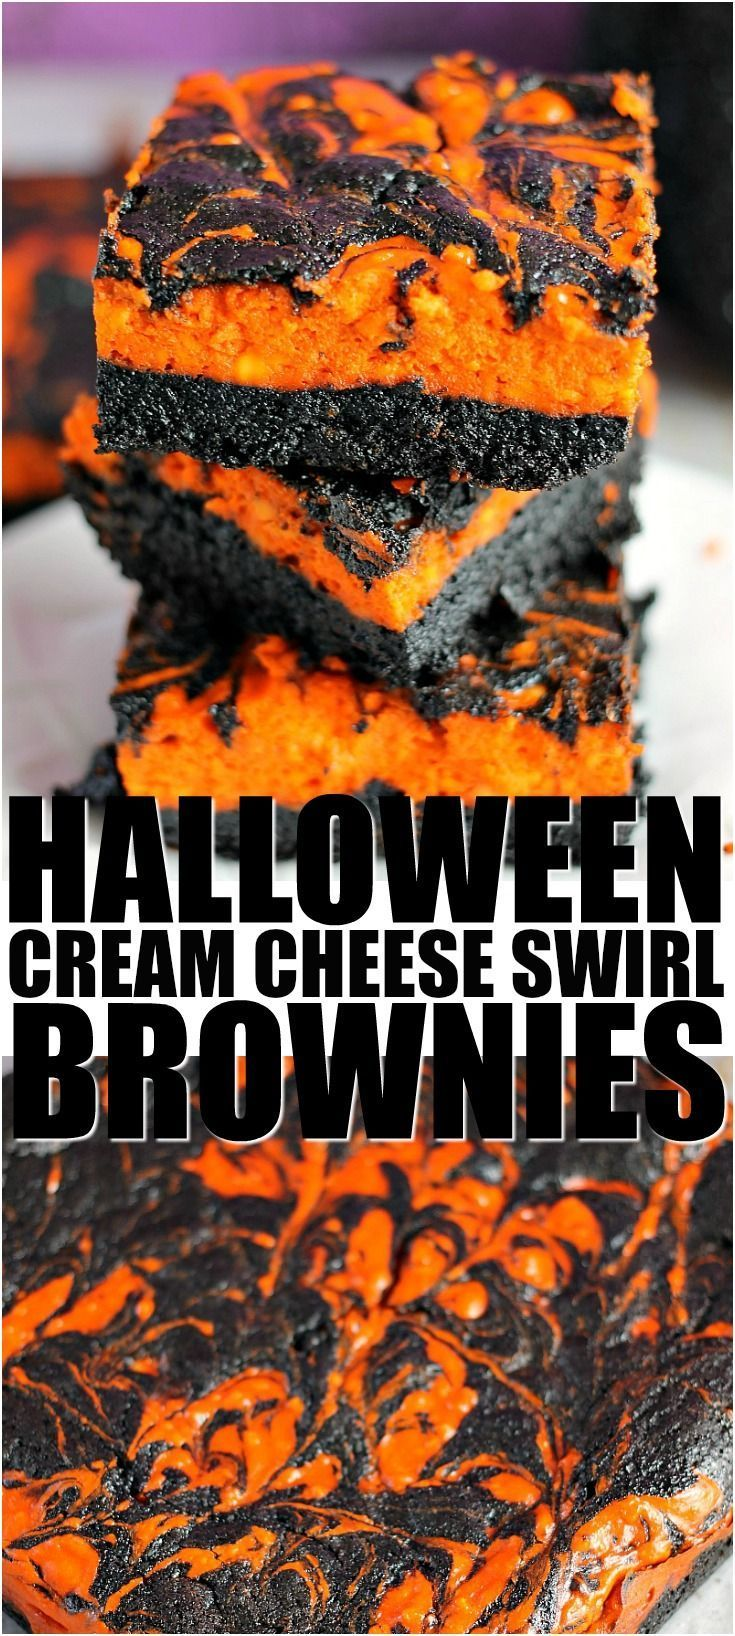 Halloween Cream Cheese Swirl Brownies Have A Layer Of Rich